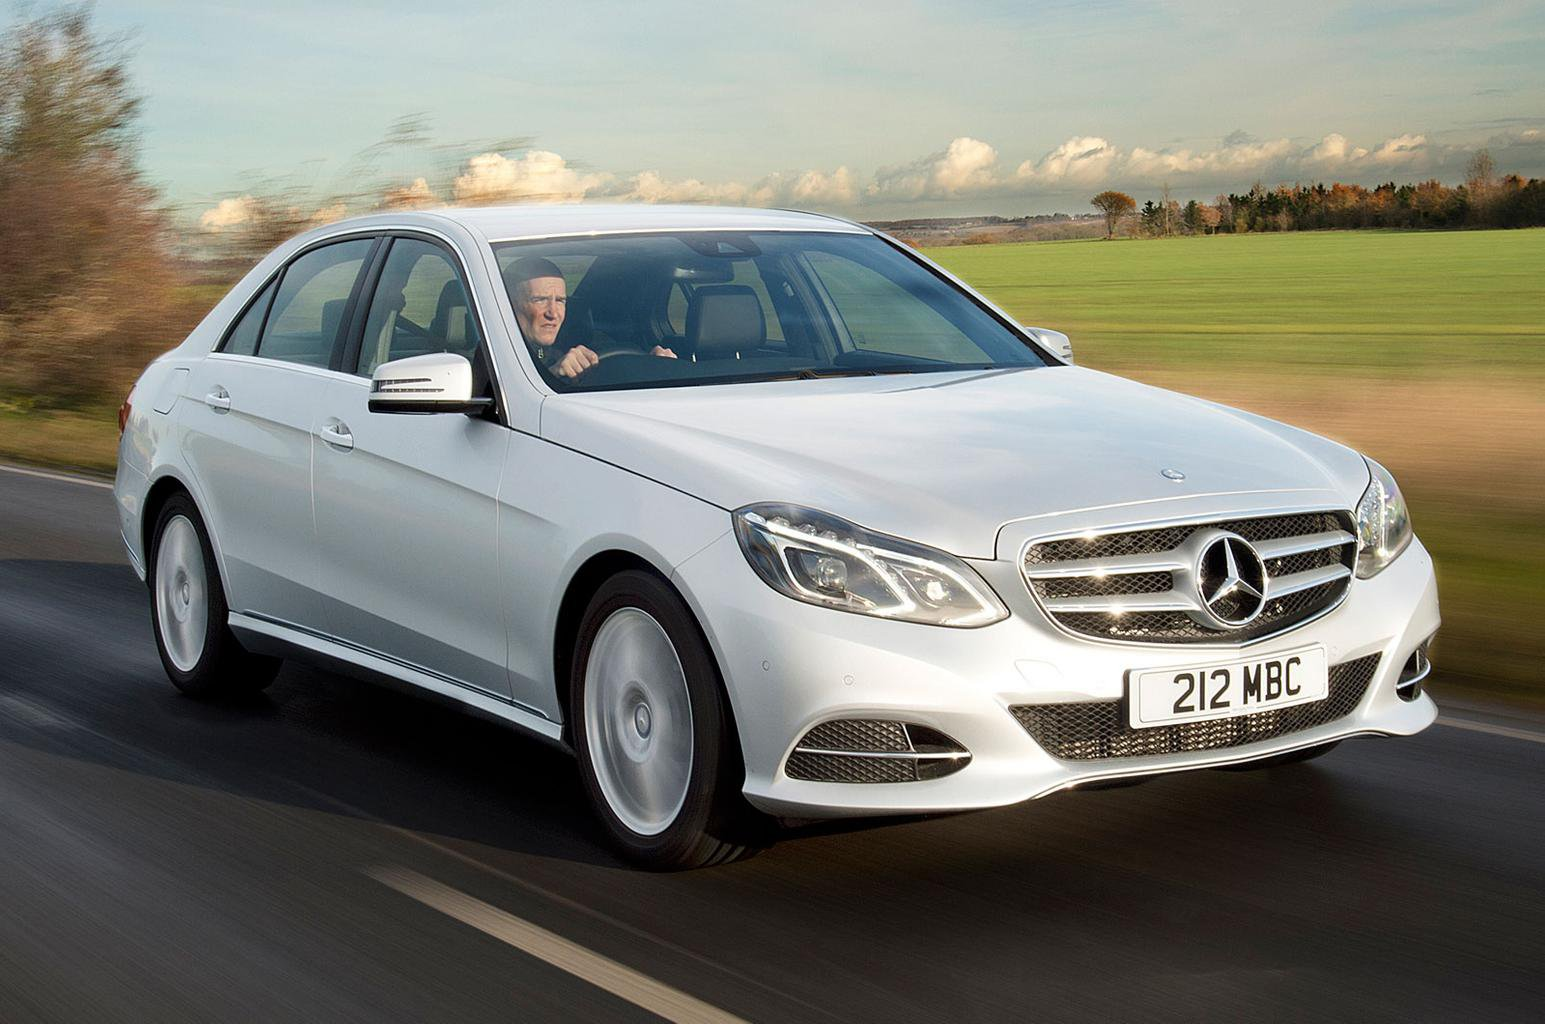 2016 Mercedes-Benz E-Class - launch date and engines